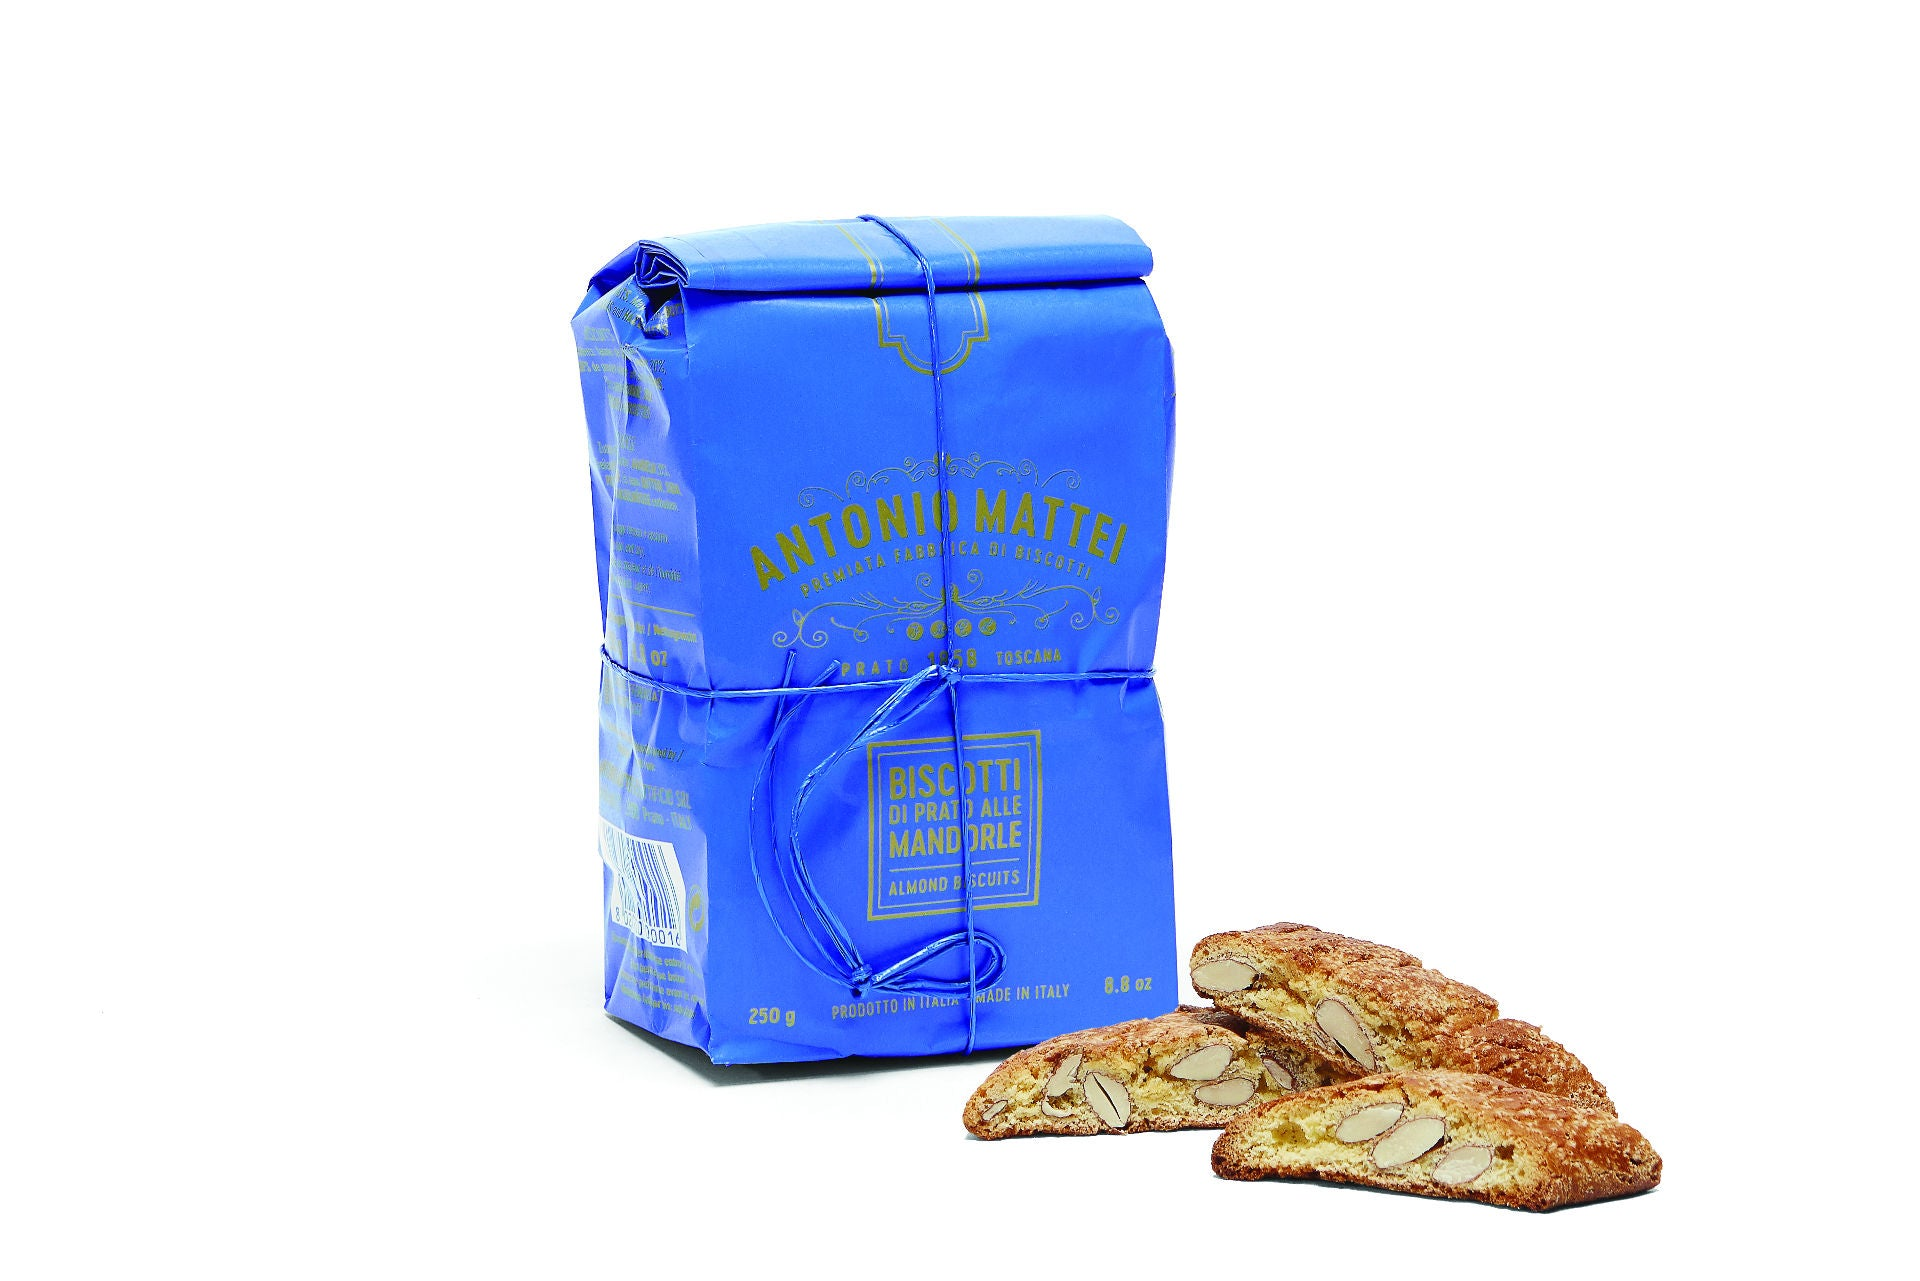 Antonio Mattei Original Cantucci Almonds Pinenuts Biscuits Made in Prato, Tuscany - Shop at the Red Beetle